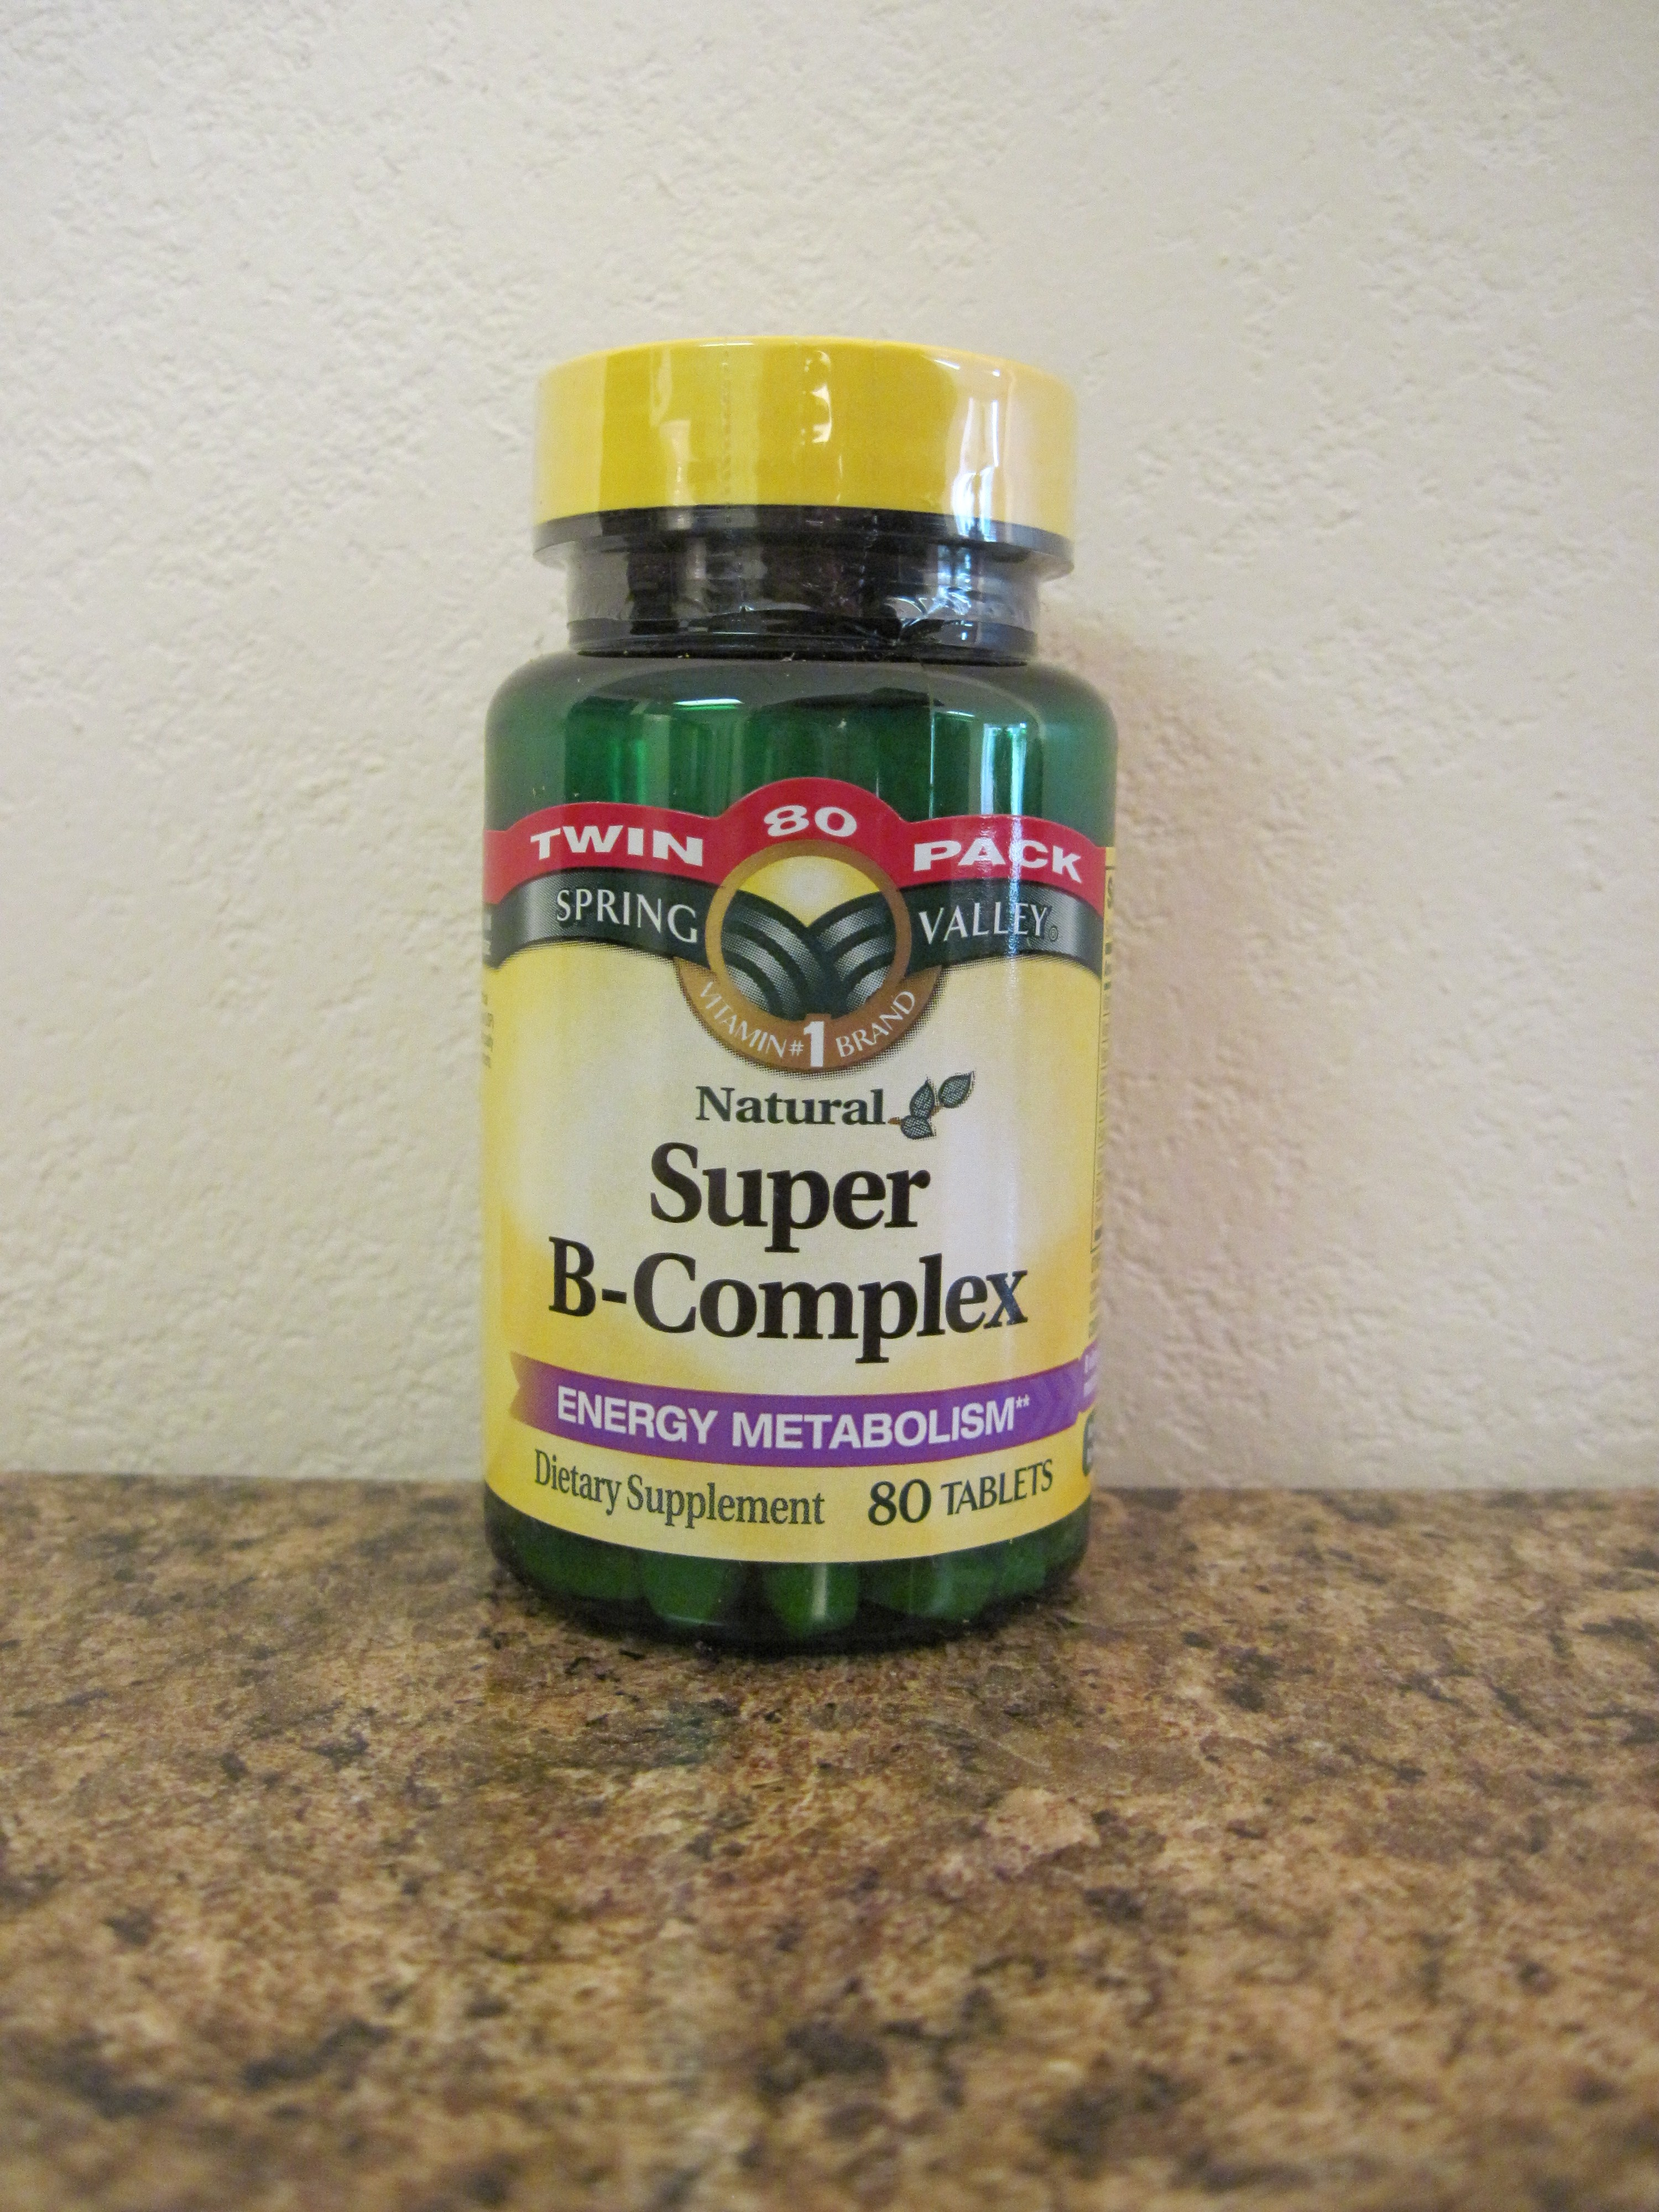 Spring Valley Natural Super B-Complex Tablets, 80 count